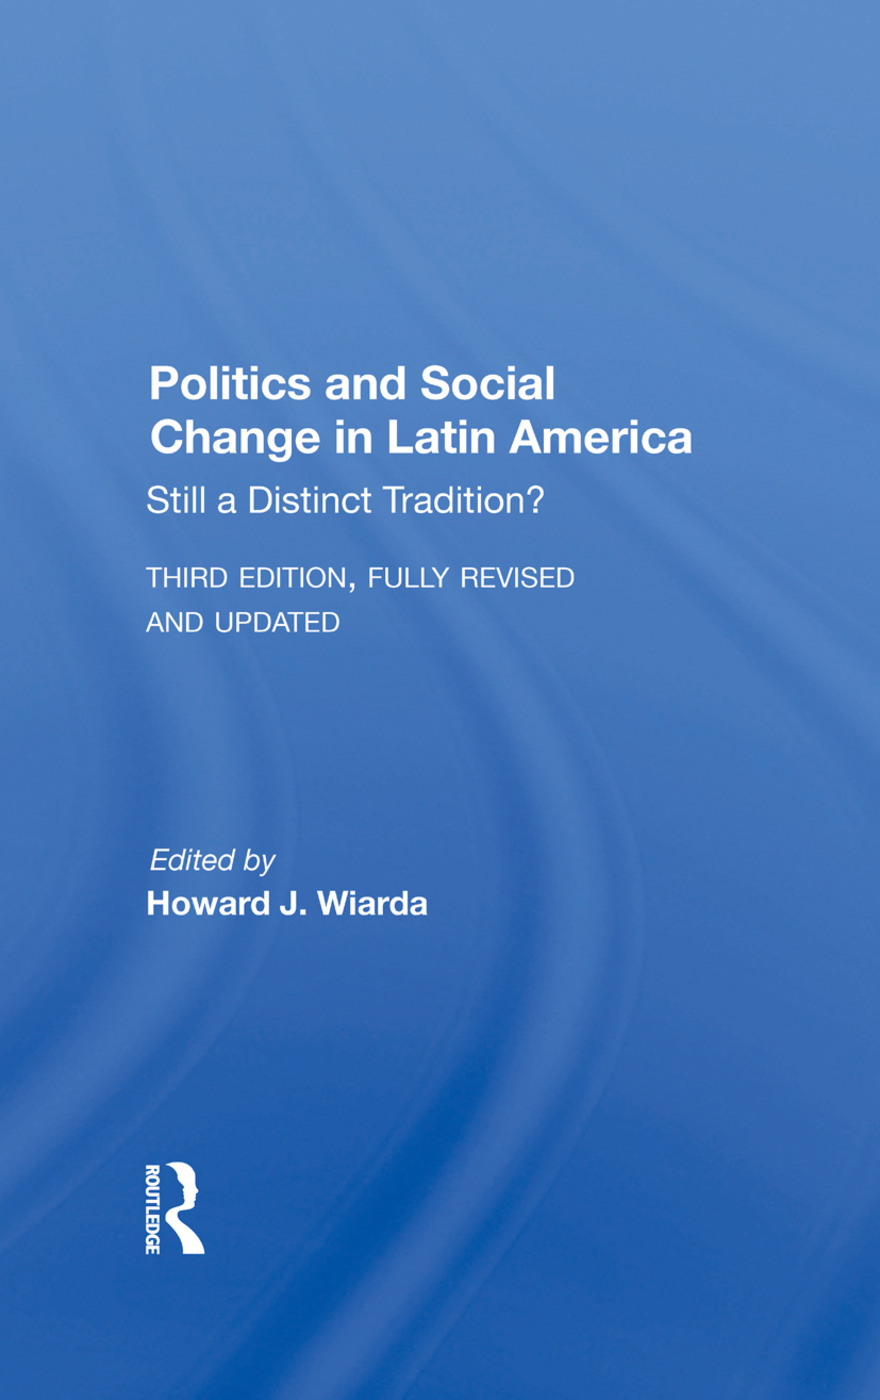 Politics And Social Change In Latin America: Still A Distinct Tradition? Third Edition book cover